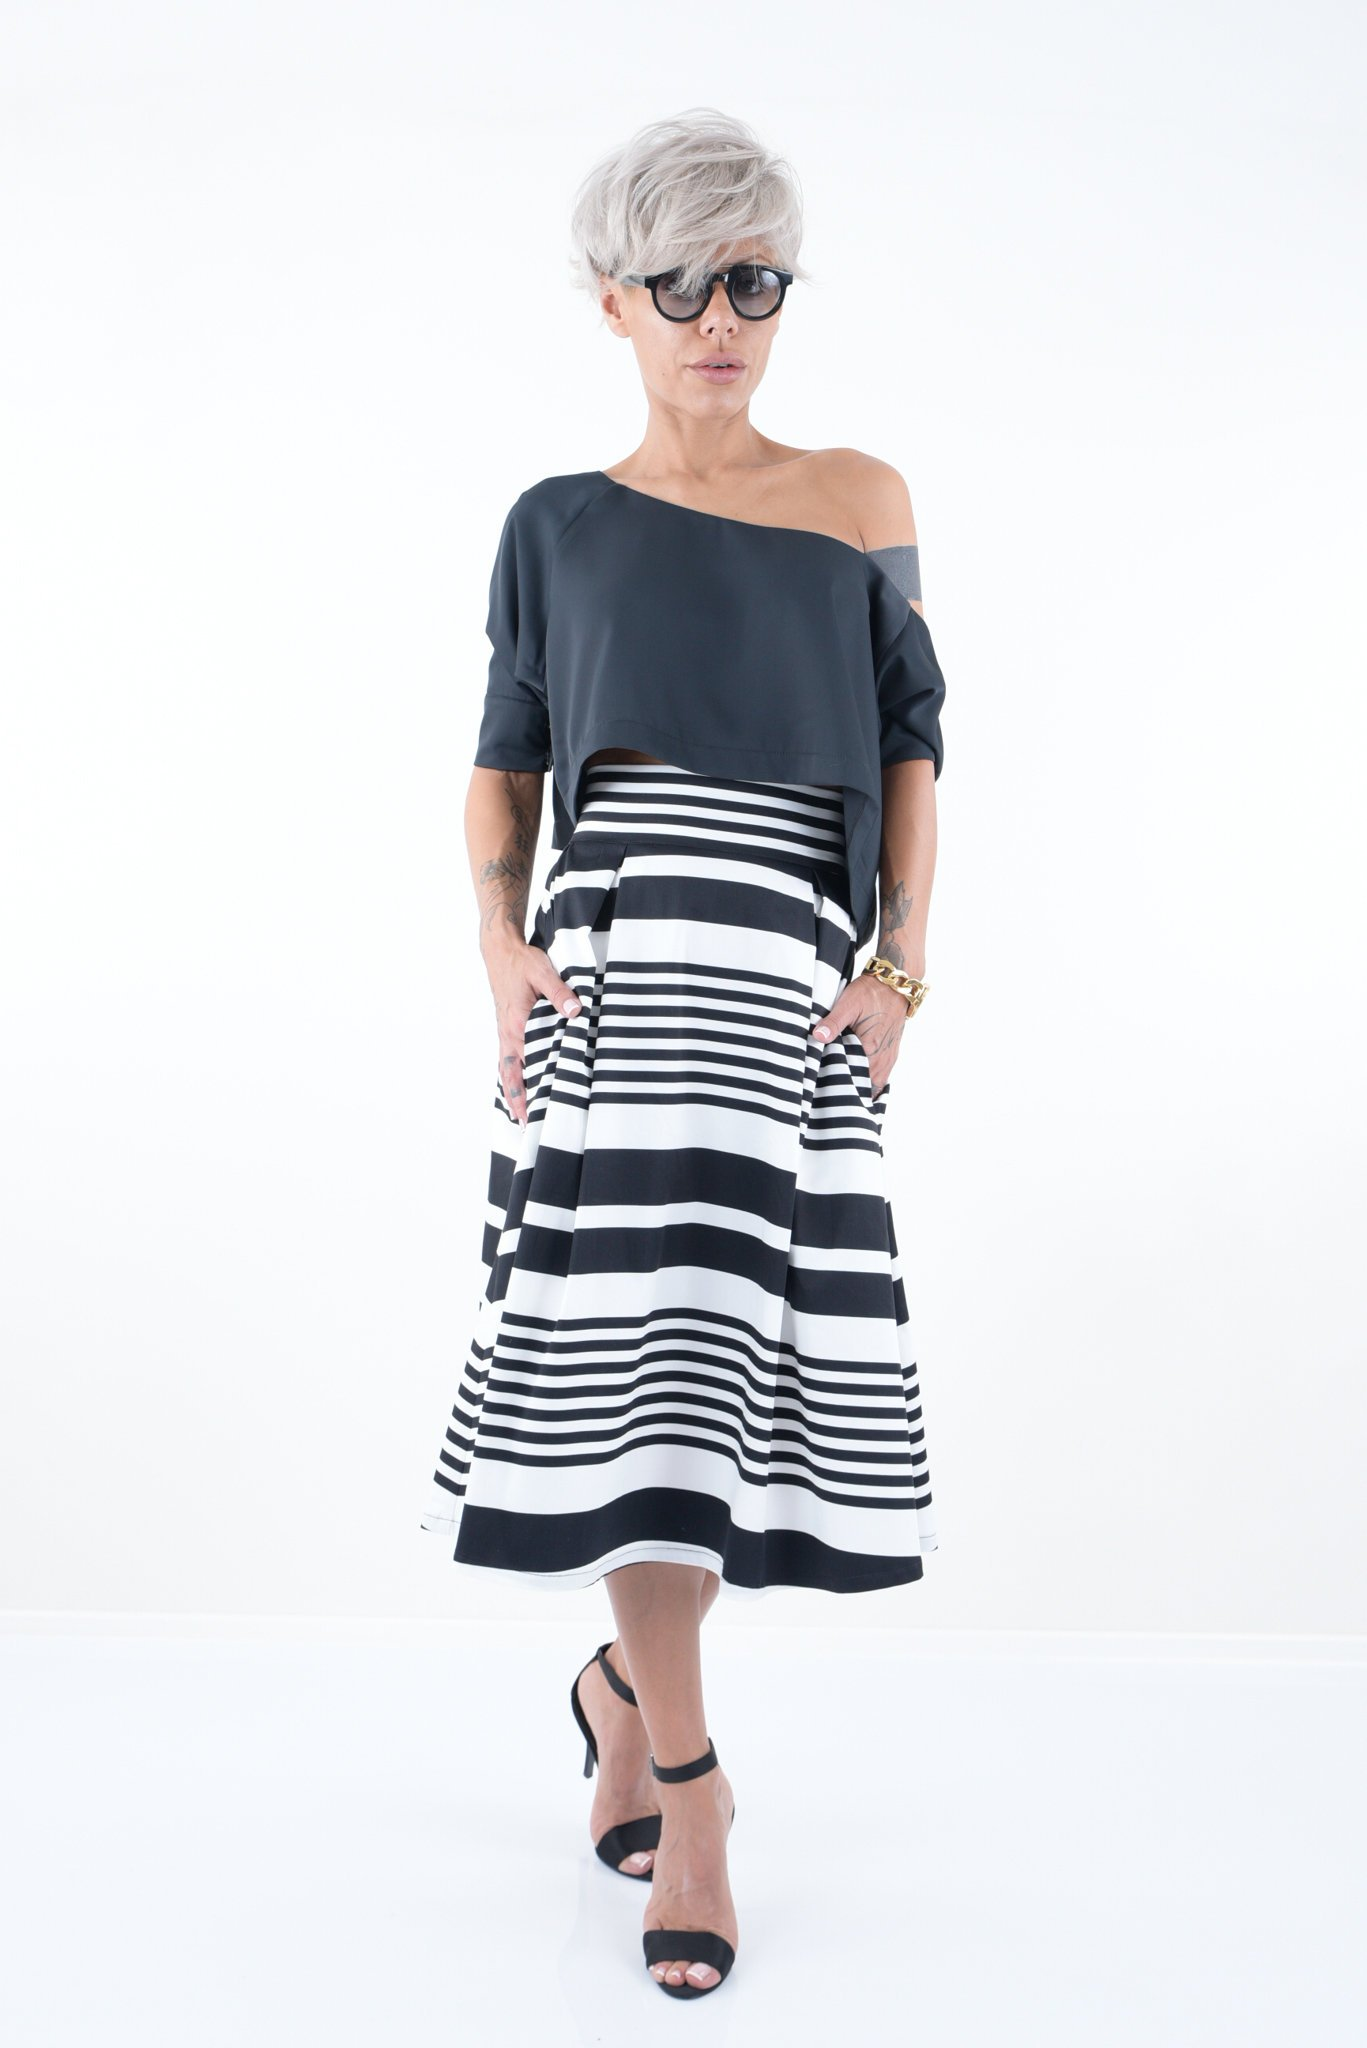 LOCKERROOM A-Line Maxi Plus Size Black and White High Waist Wedding Midi Full Skirt with Pockets